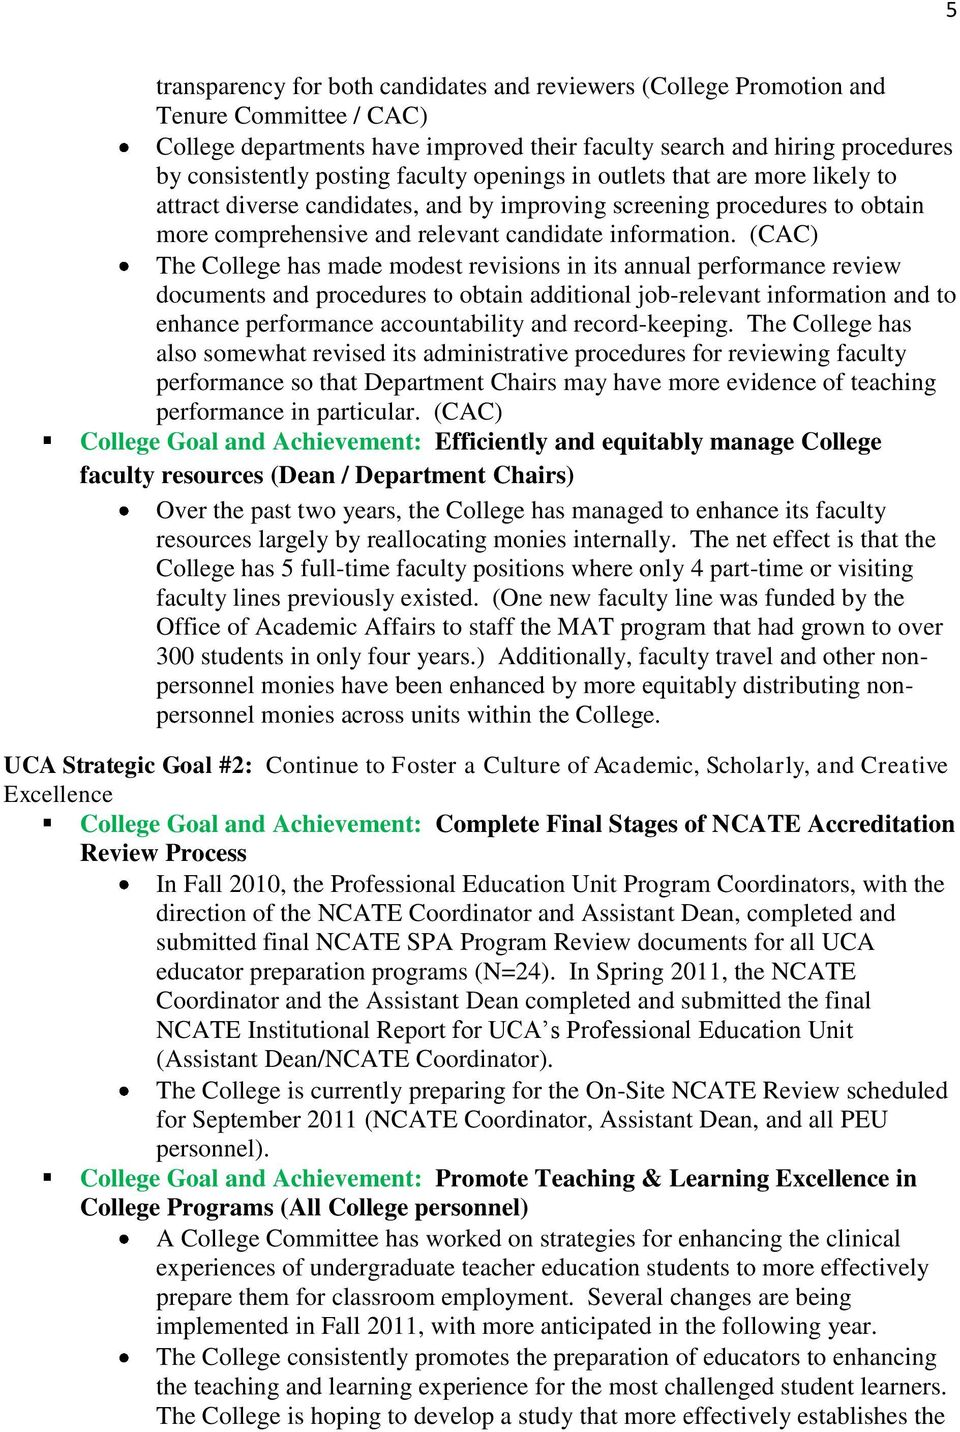 (CAC) The College has made modest revisions in its annual performance review documents and procedures to obtain additional job-relevant information and to enhance performance accountability and